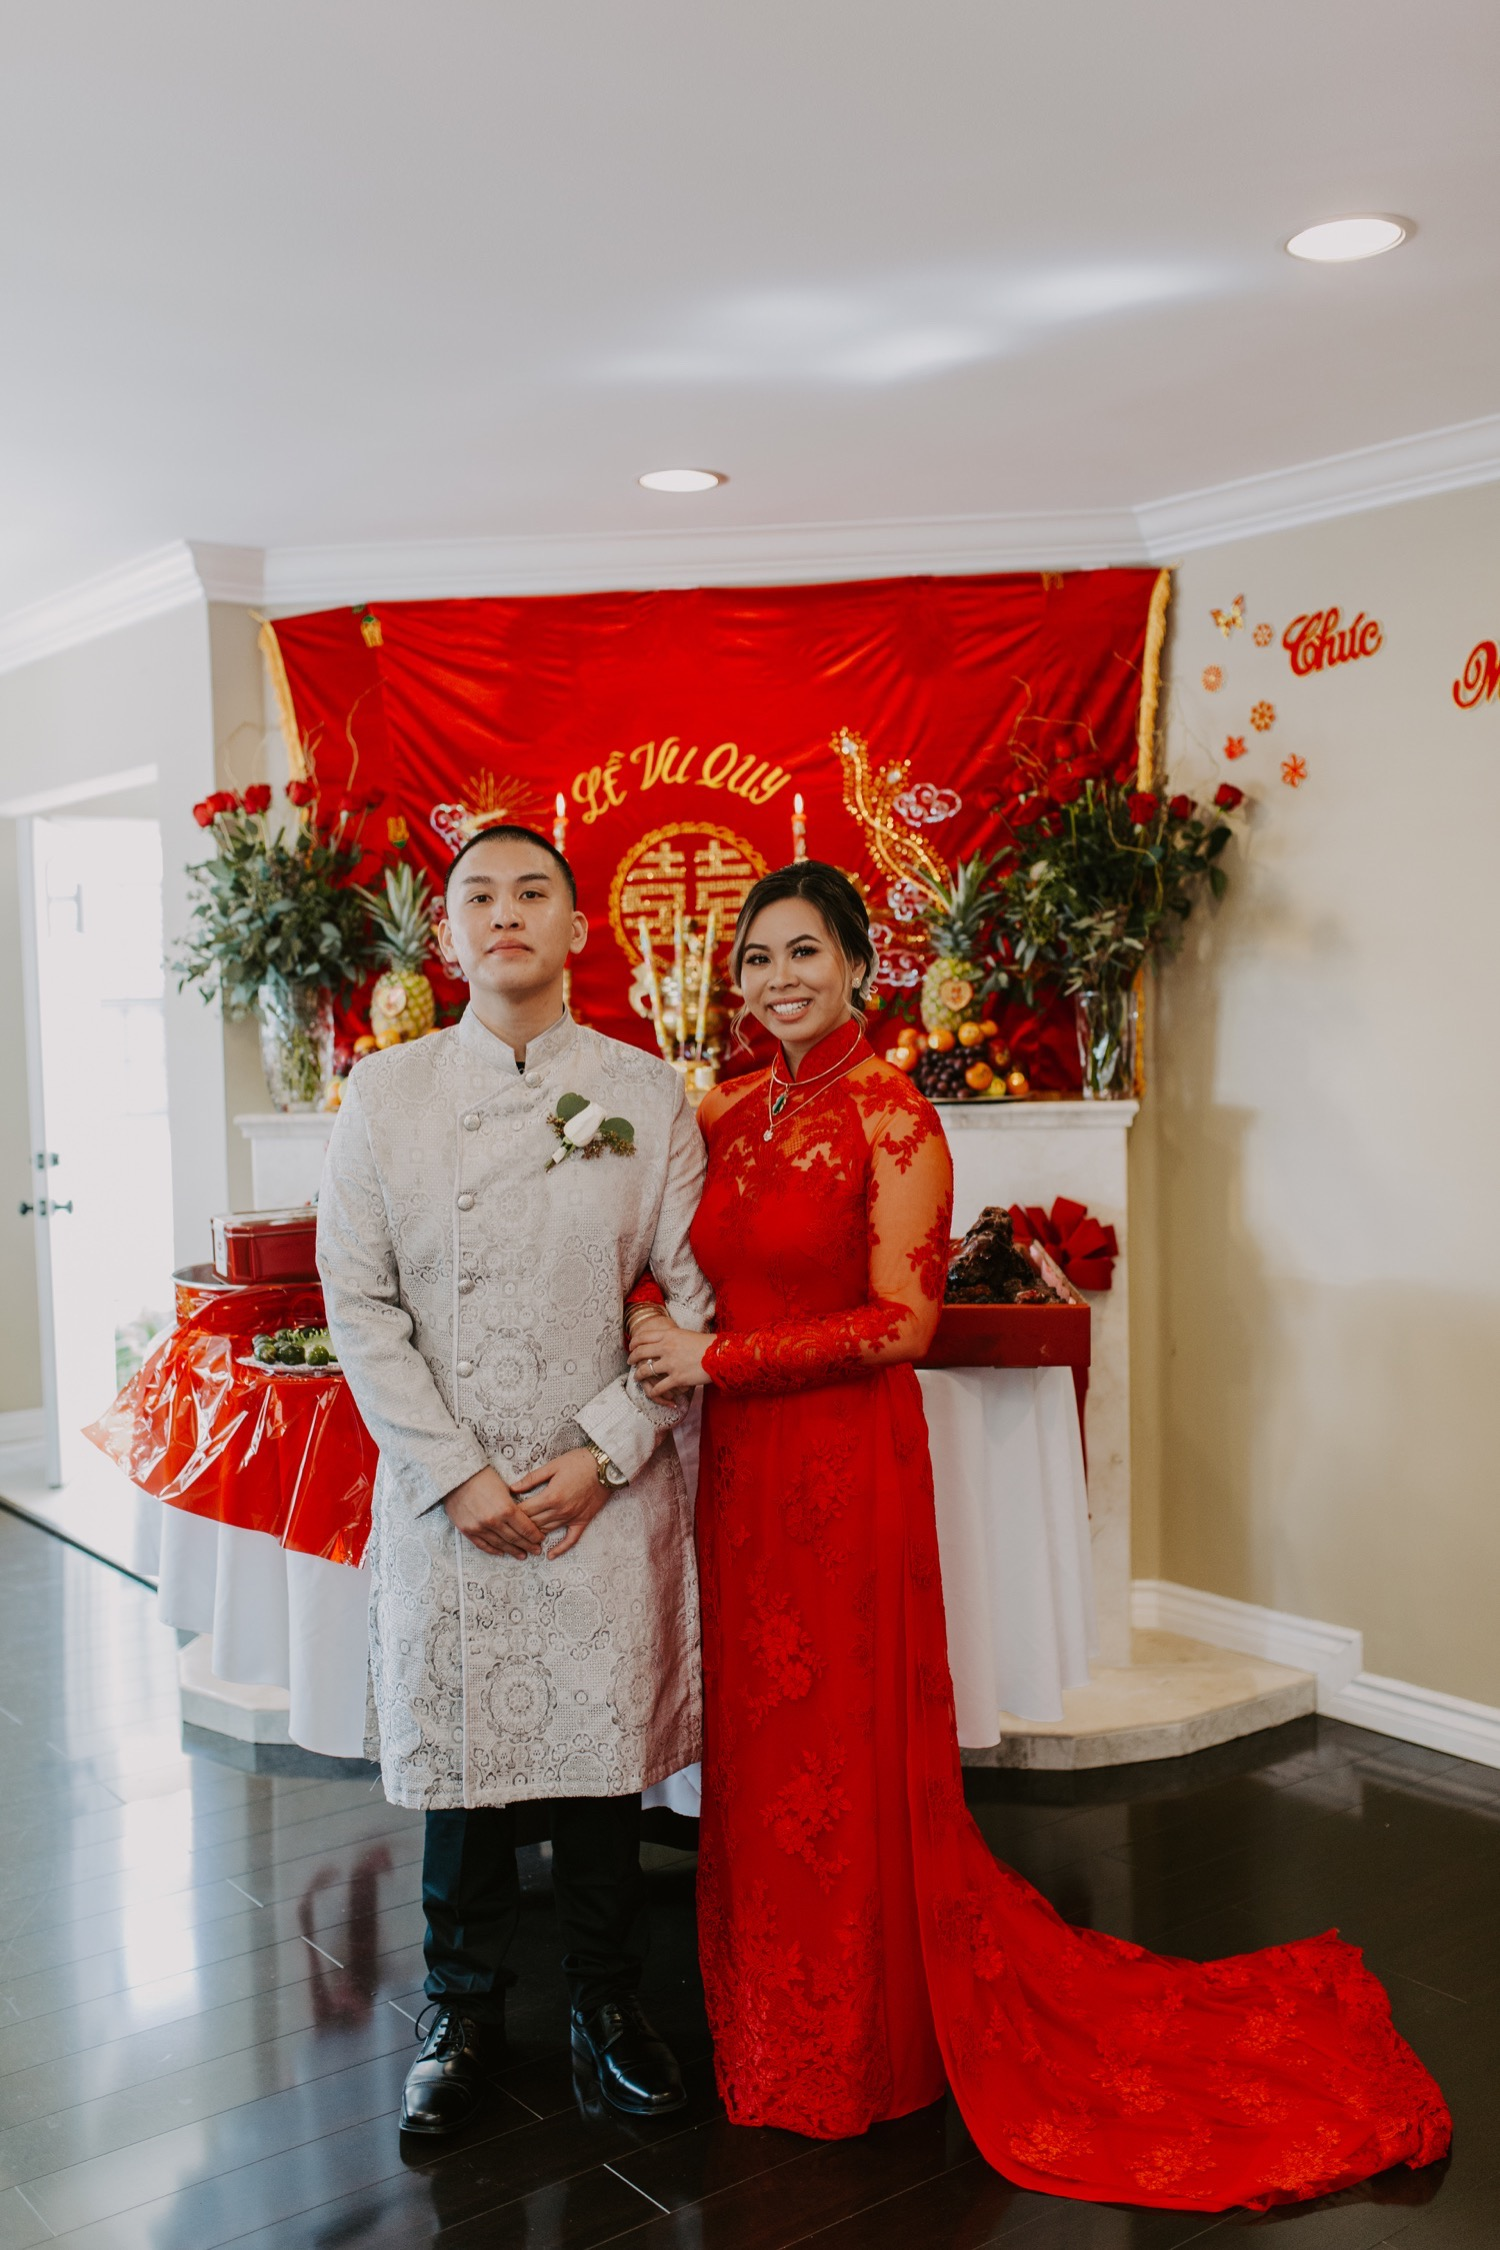 twenty-eight-irvine-wedding-california-traditional-vietnamese-tea-ceremony11.jpg